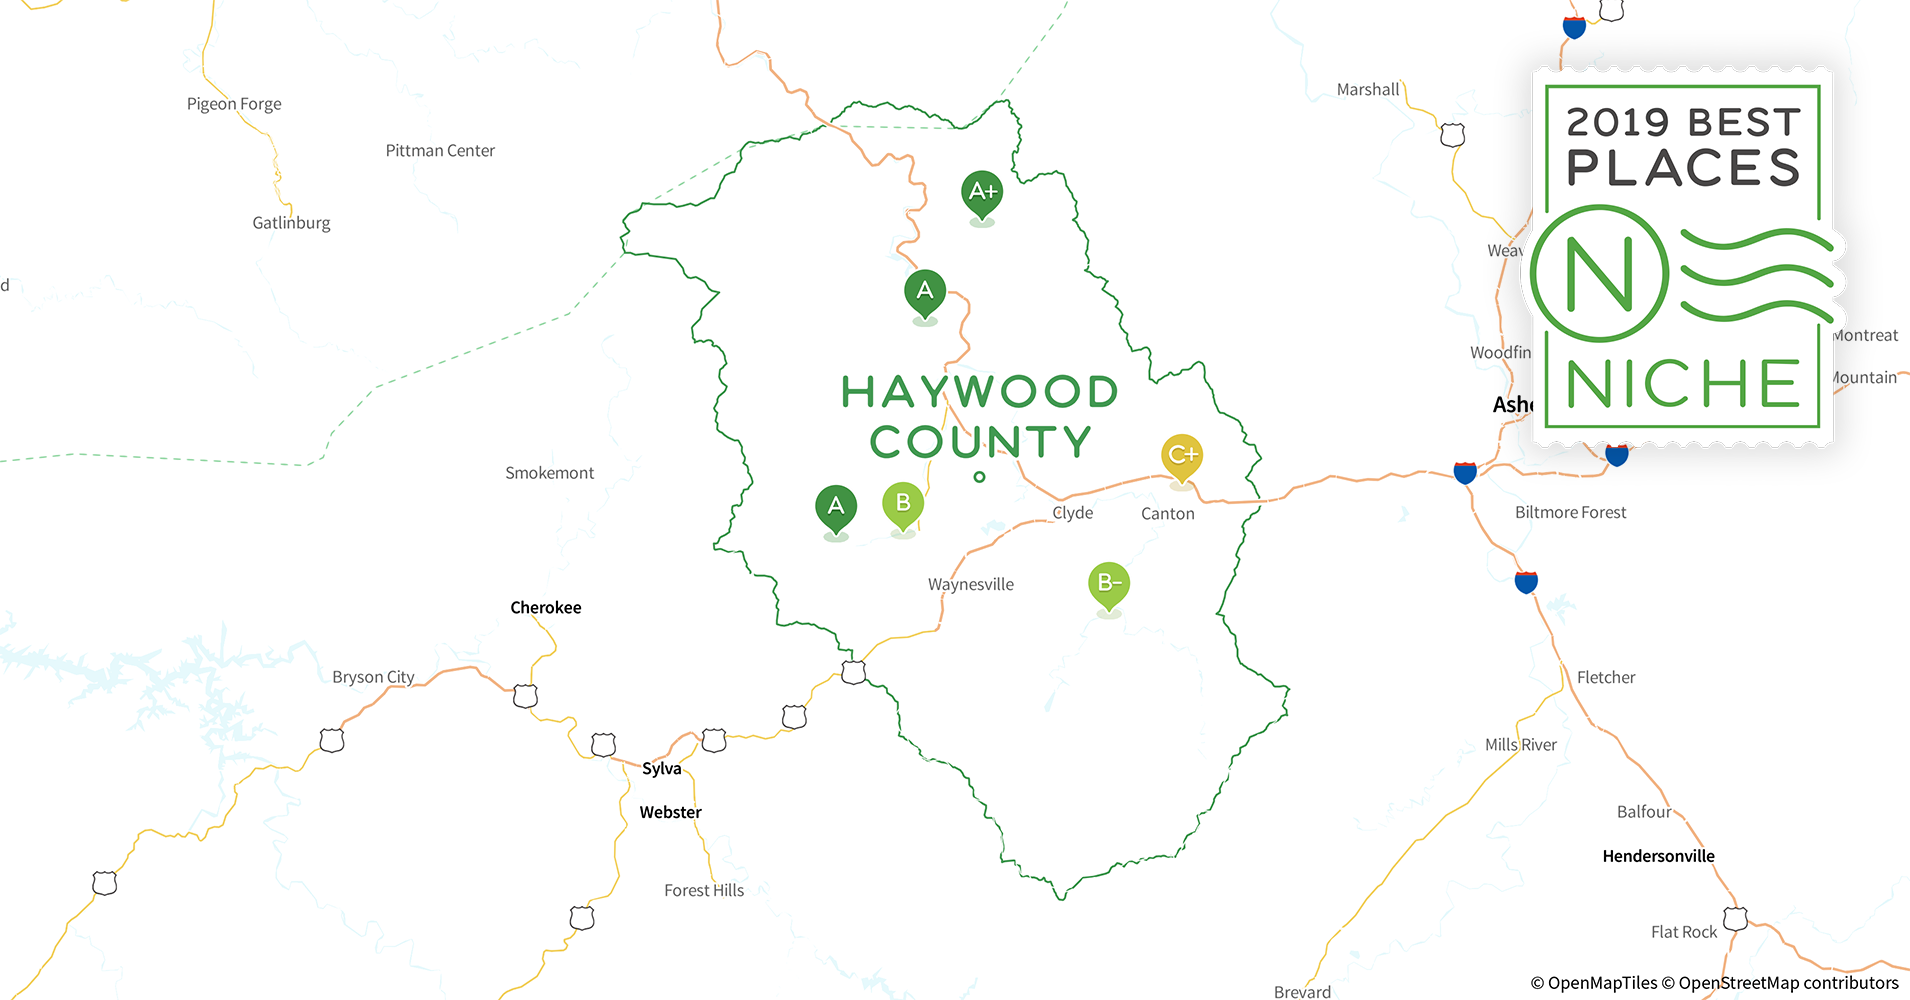 Haywood County Nc Map.2019 Best Places To Live In Haywood County Nc Niche